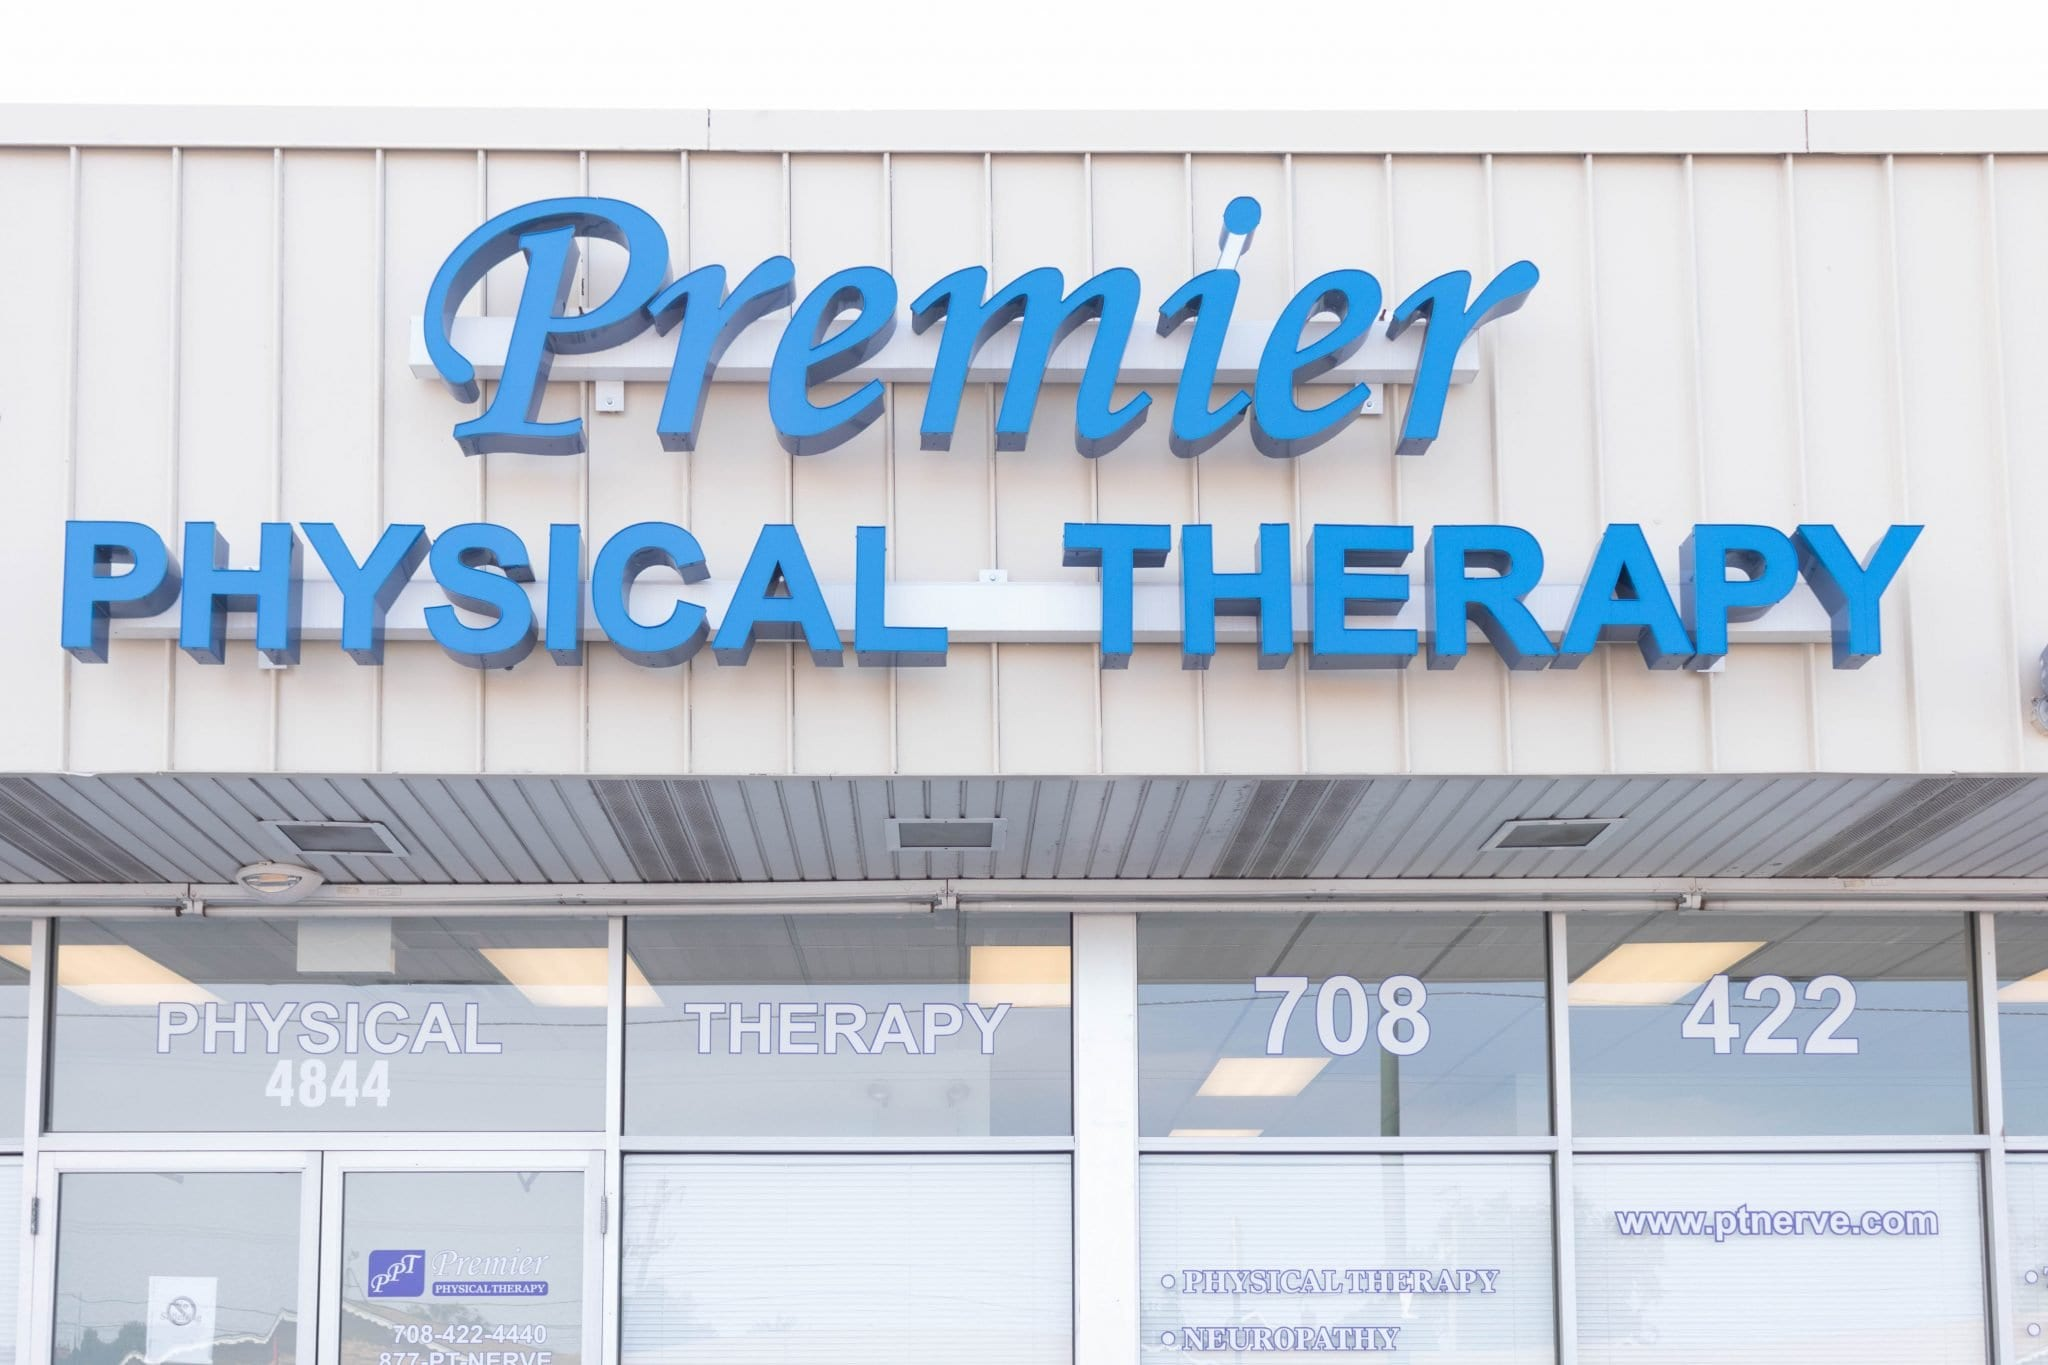 Physical Therapy in Chicago, IL near Midway